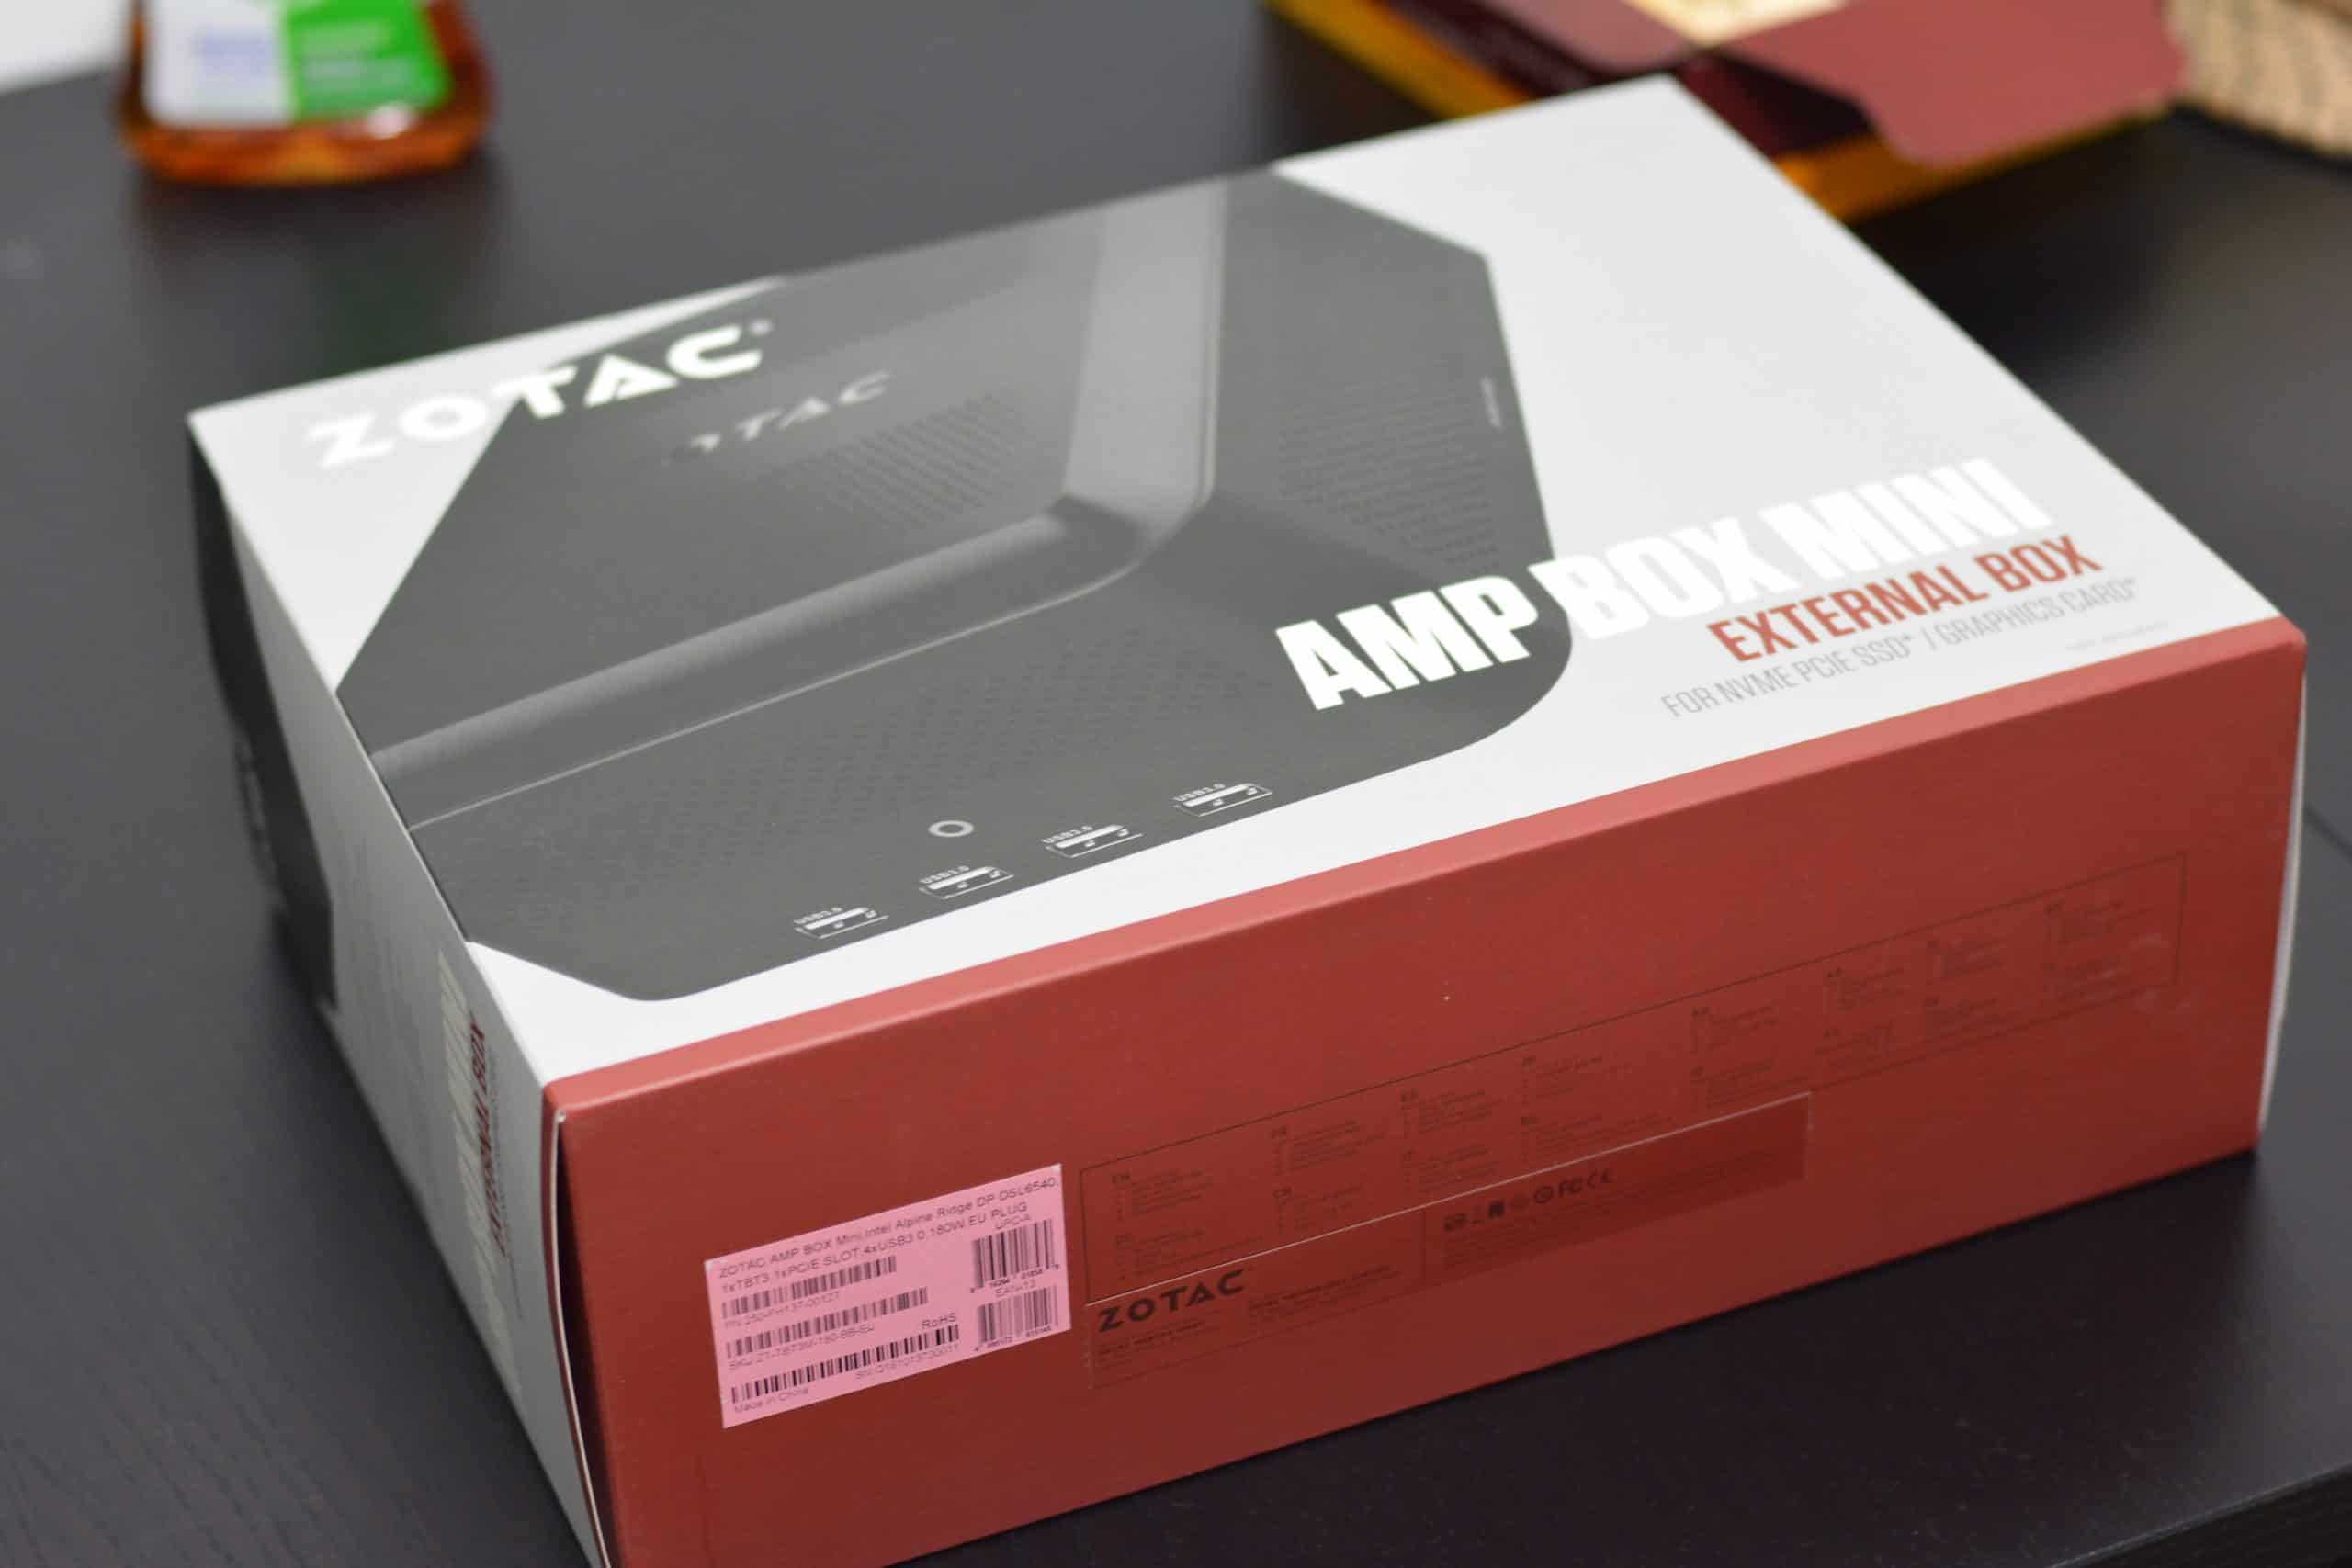 DSC 4690 - ZOTAC AMP Box Review